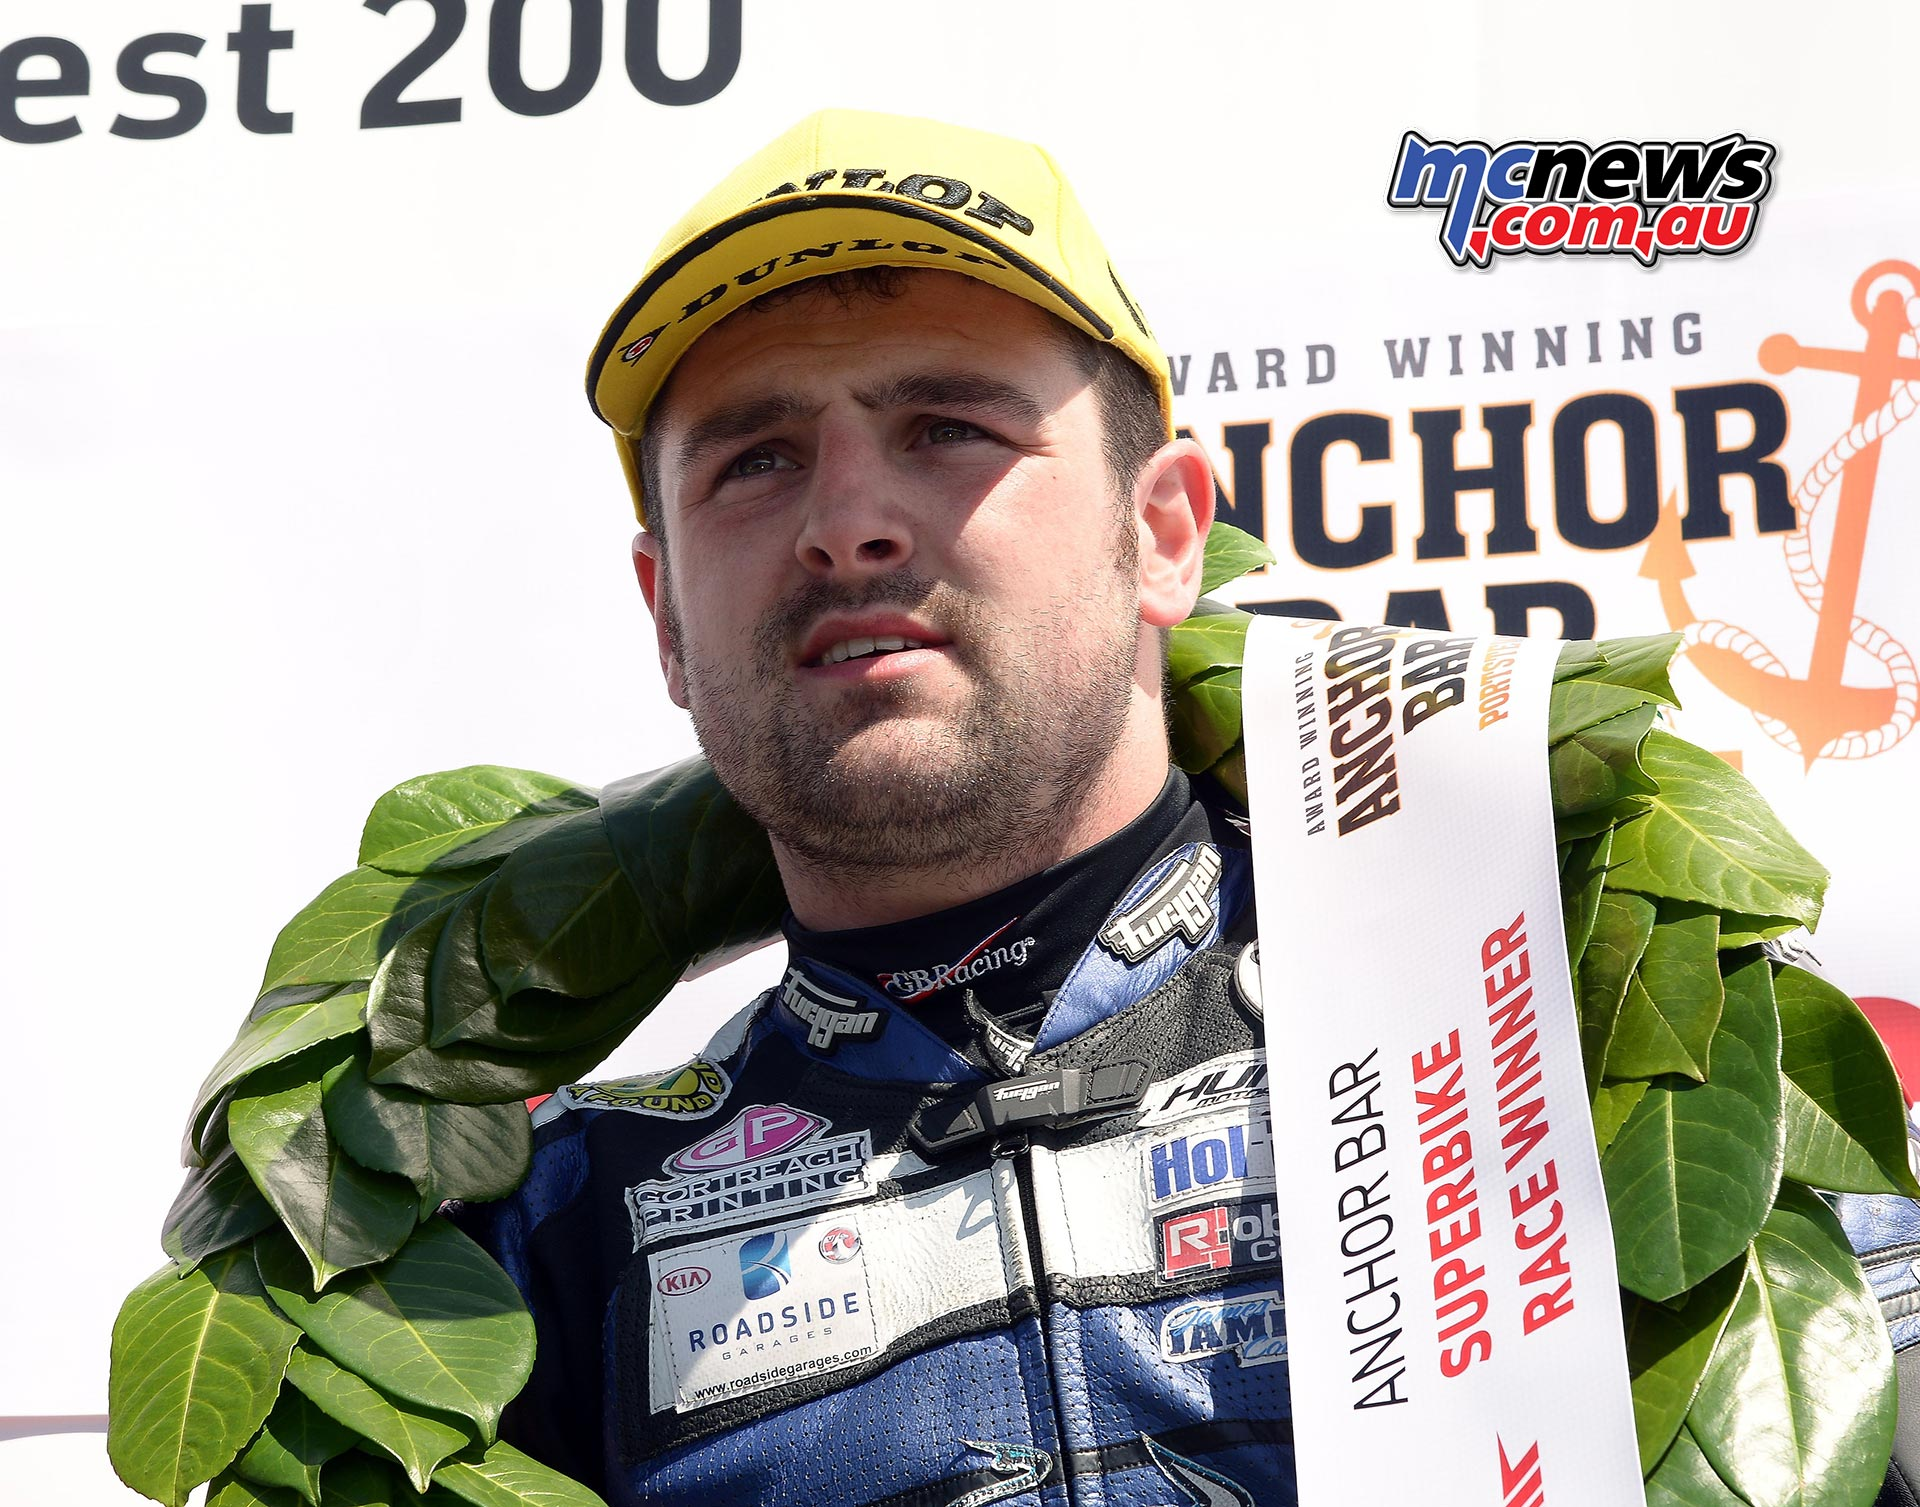 North West 200 - 2016 - Michael Dunlop - Image by Jon Jessop